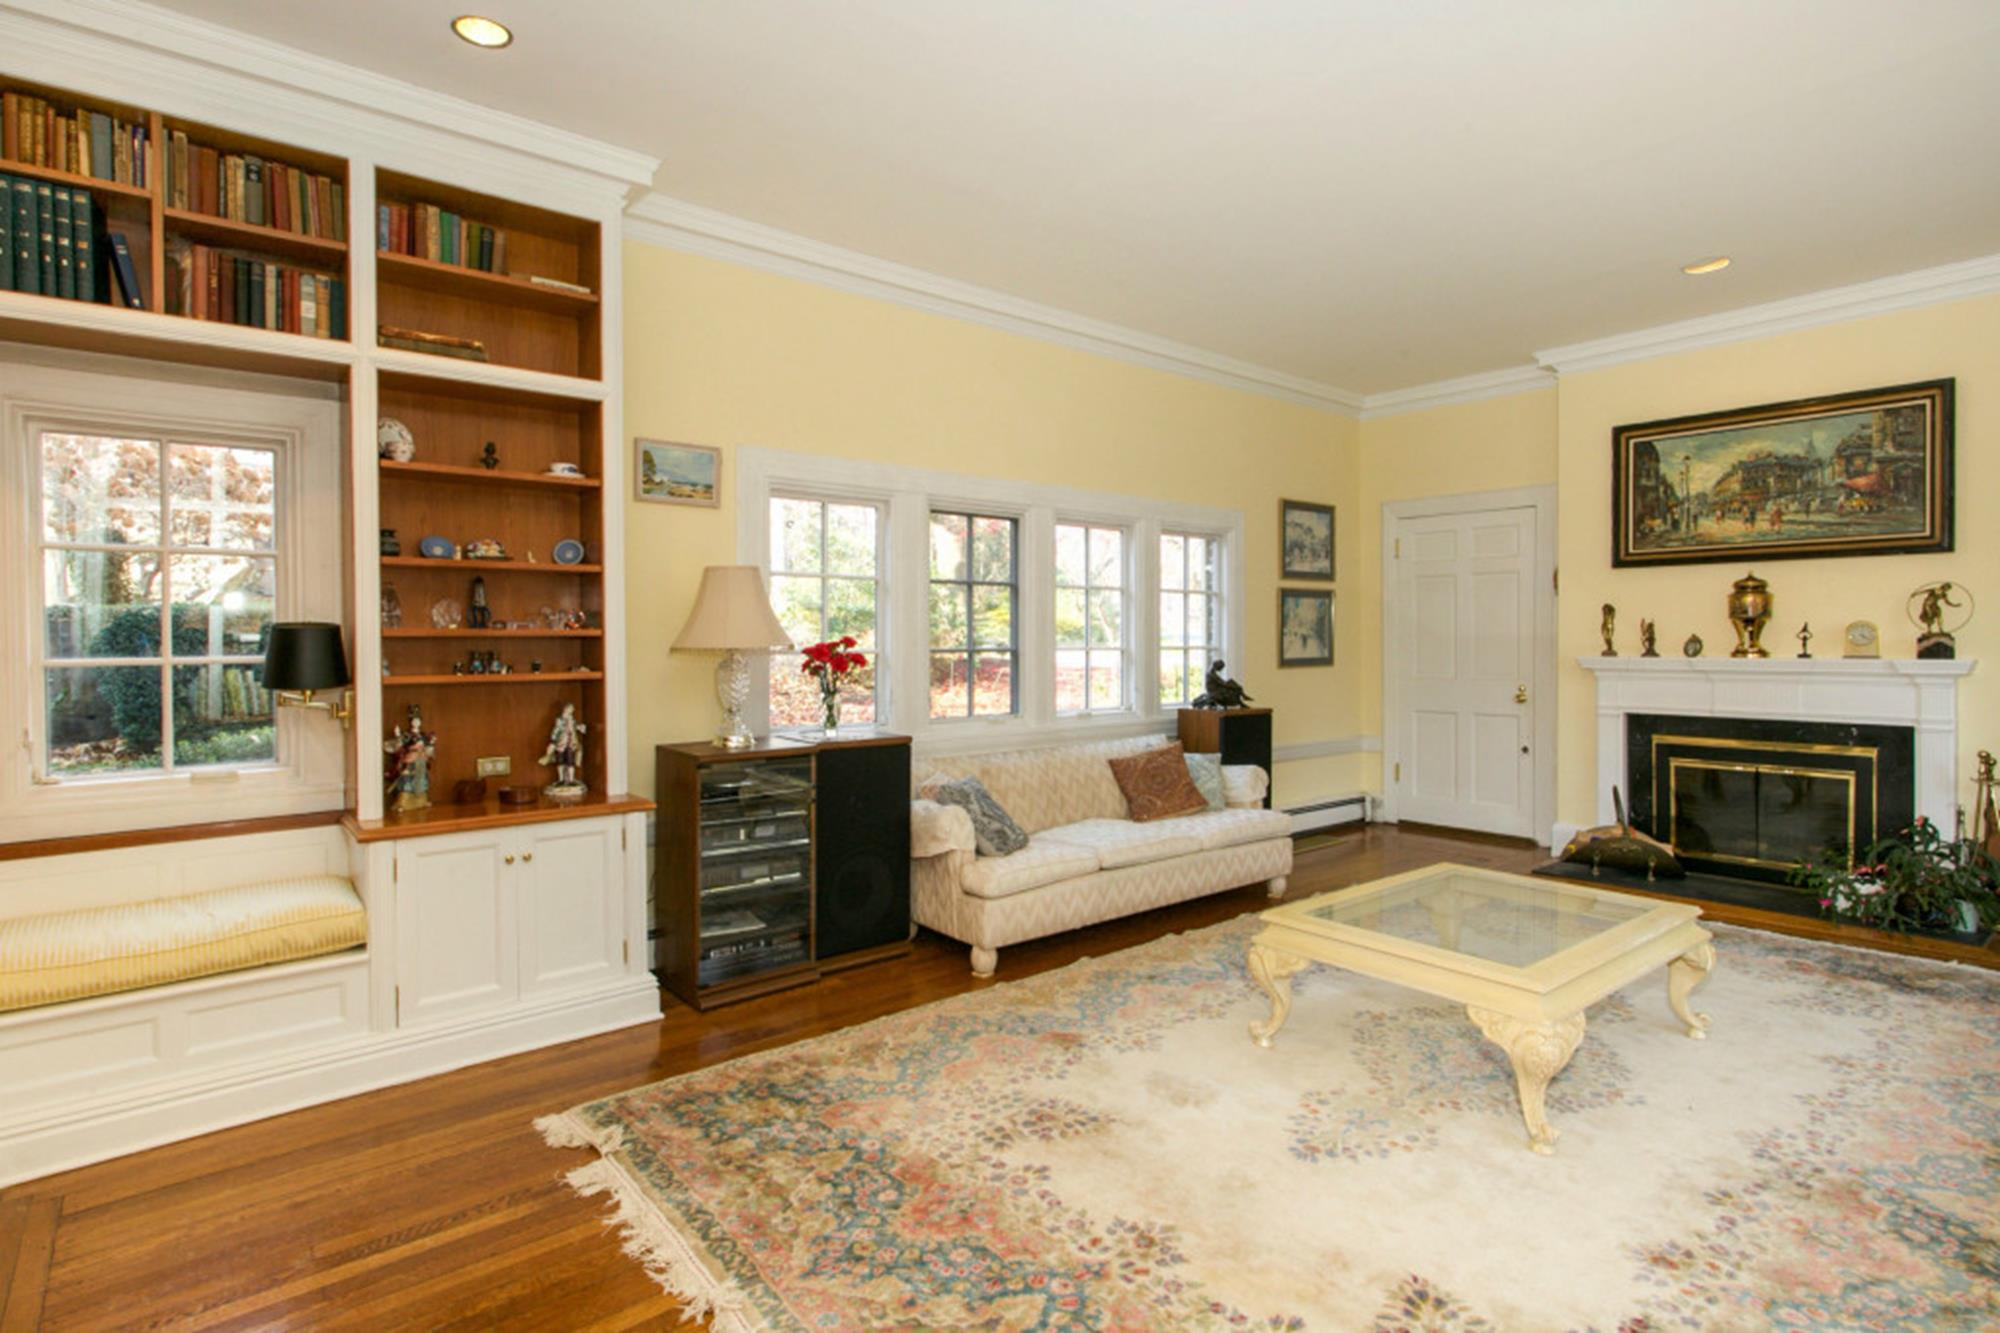 Picturesque 5-Bd. Dwight James Baum House w/ Storybook Charm & Large Grassy Lawns